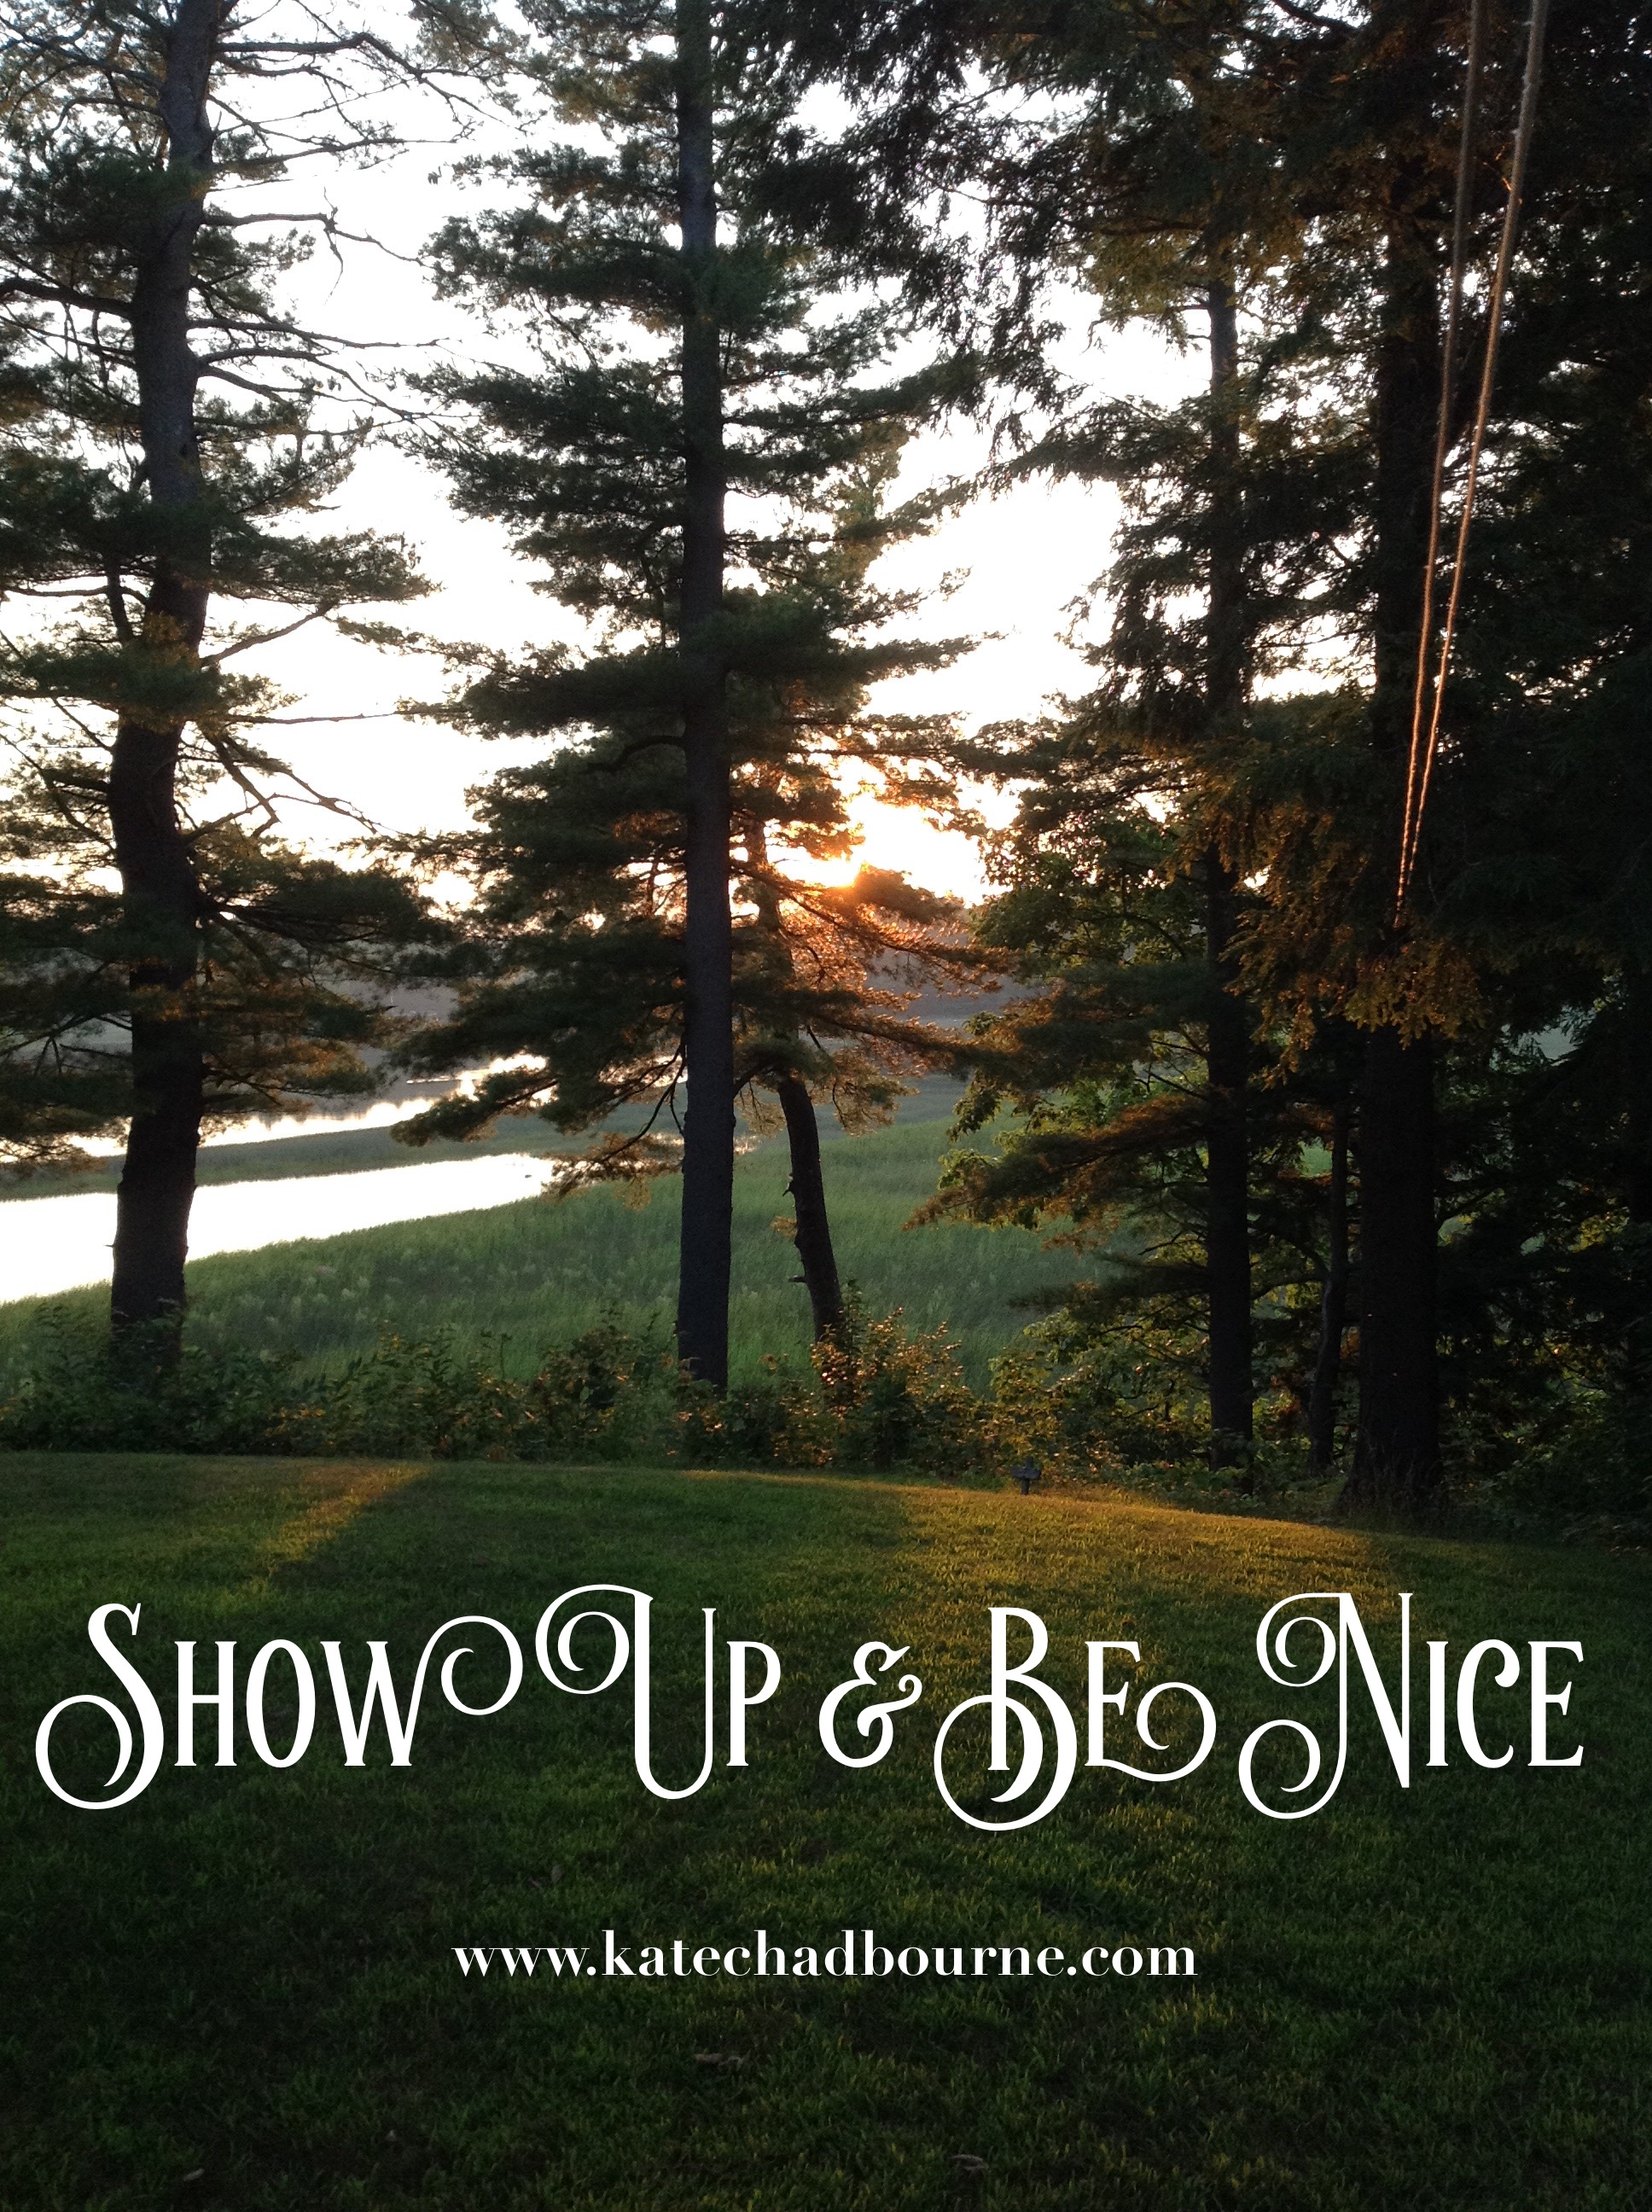 Show Up & Be Nice